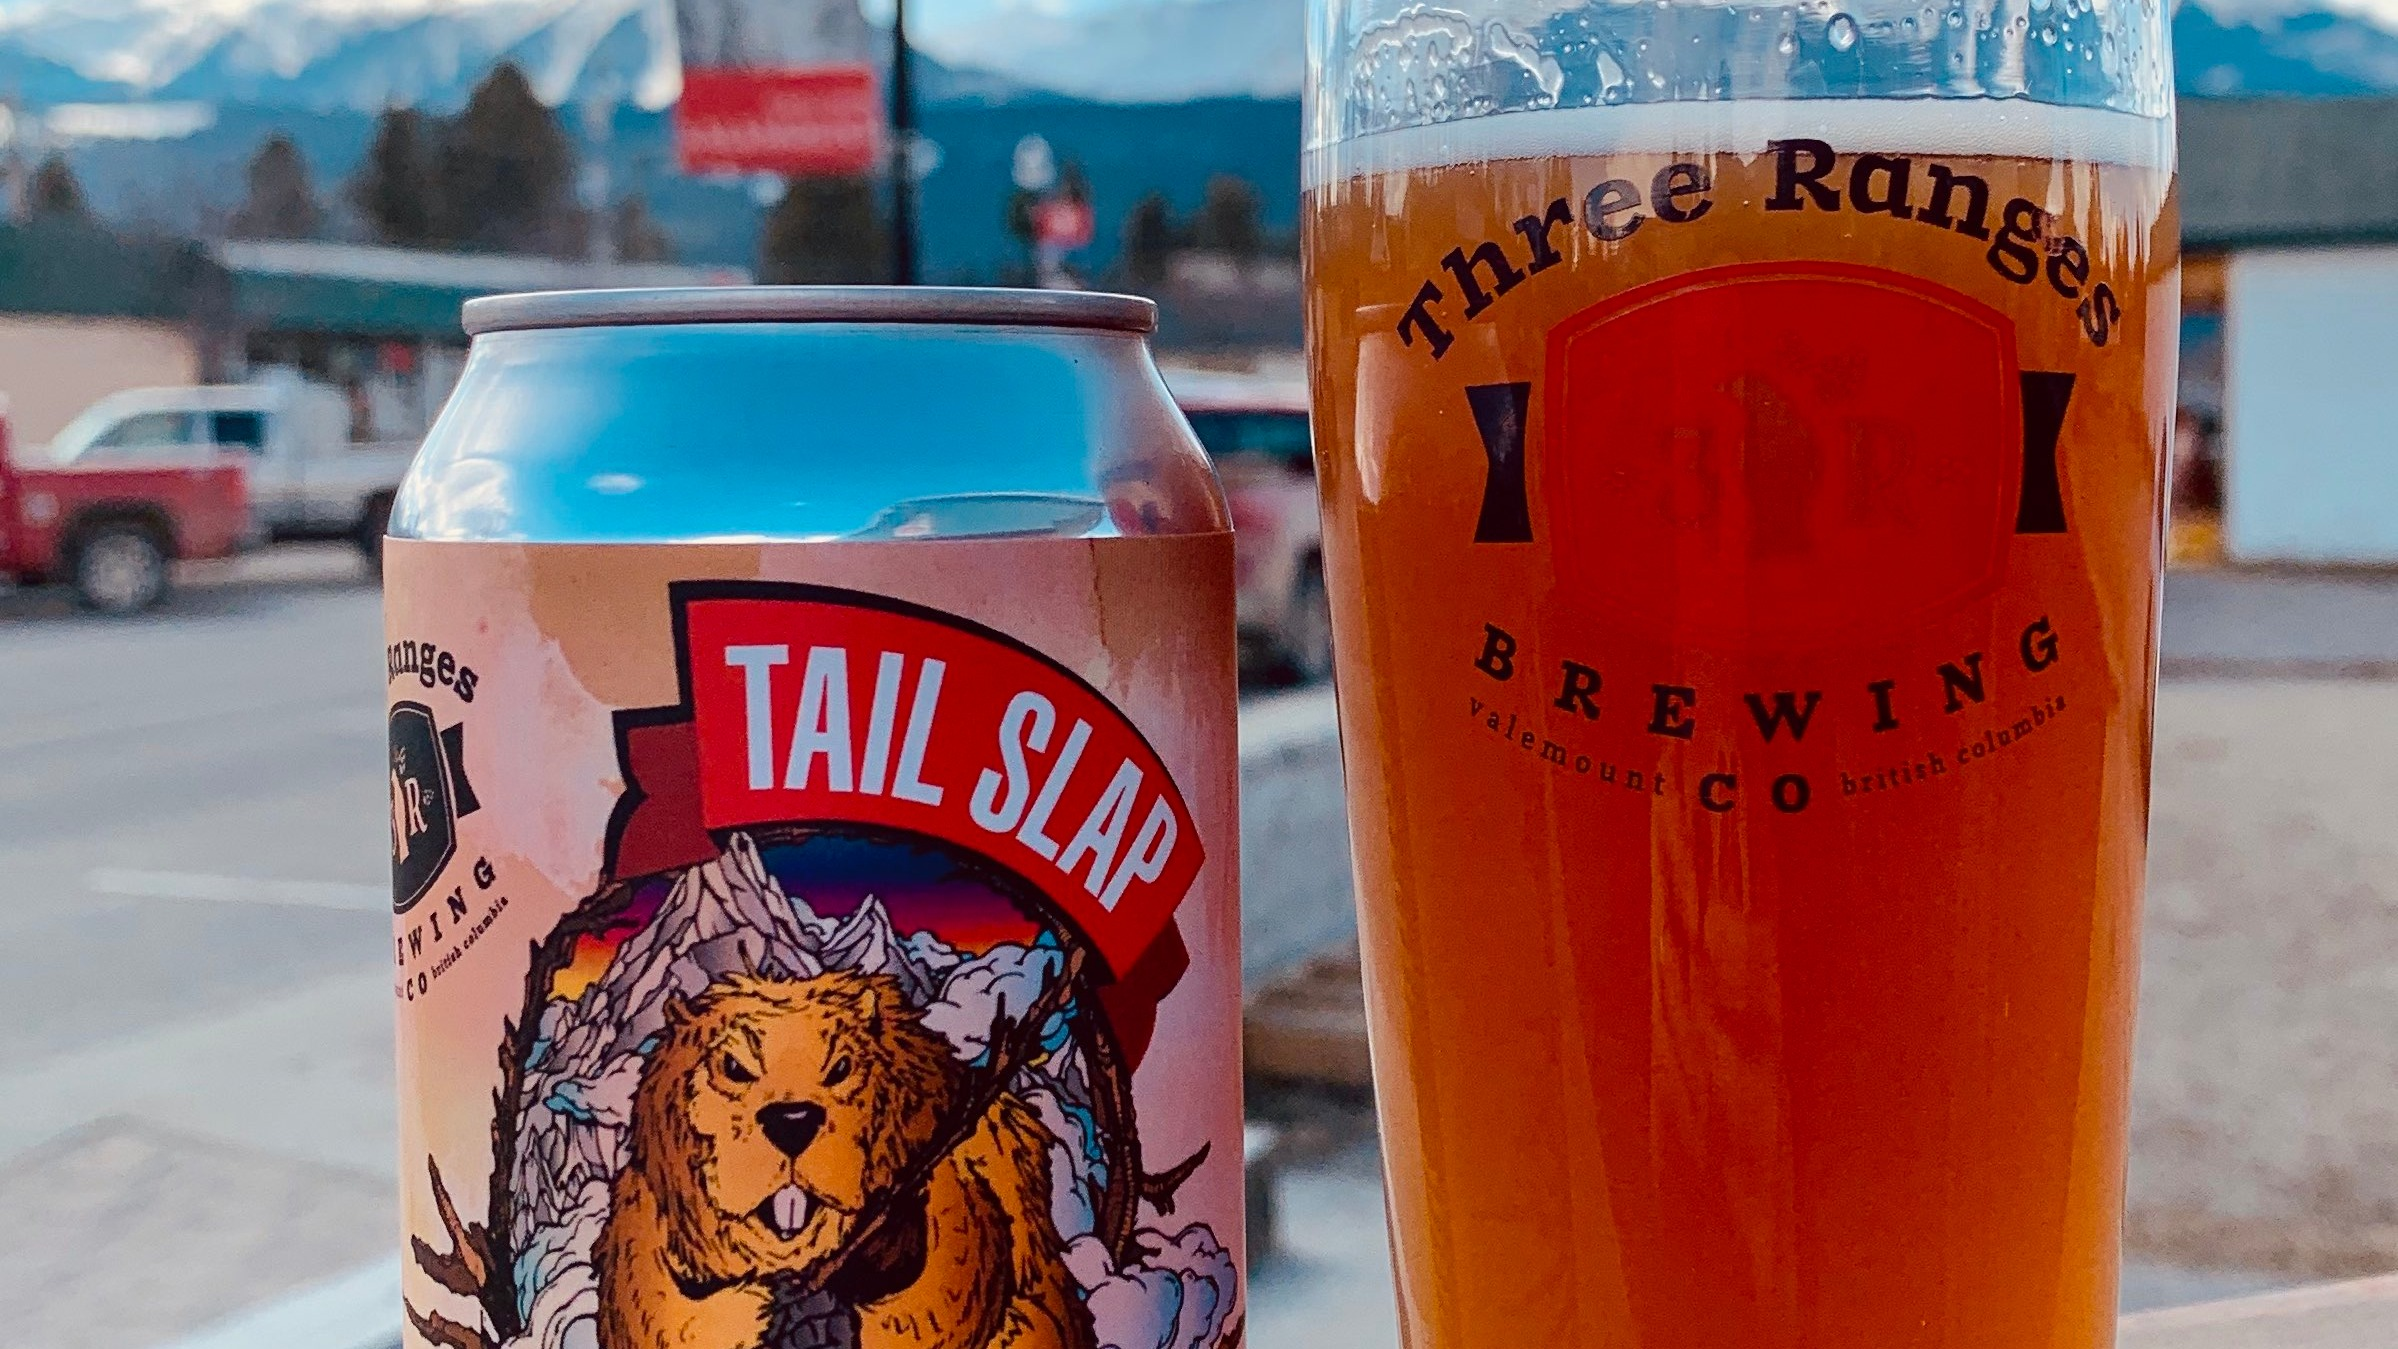 Tail Slap craft beer